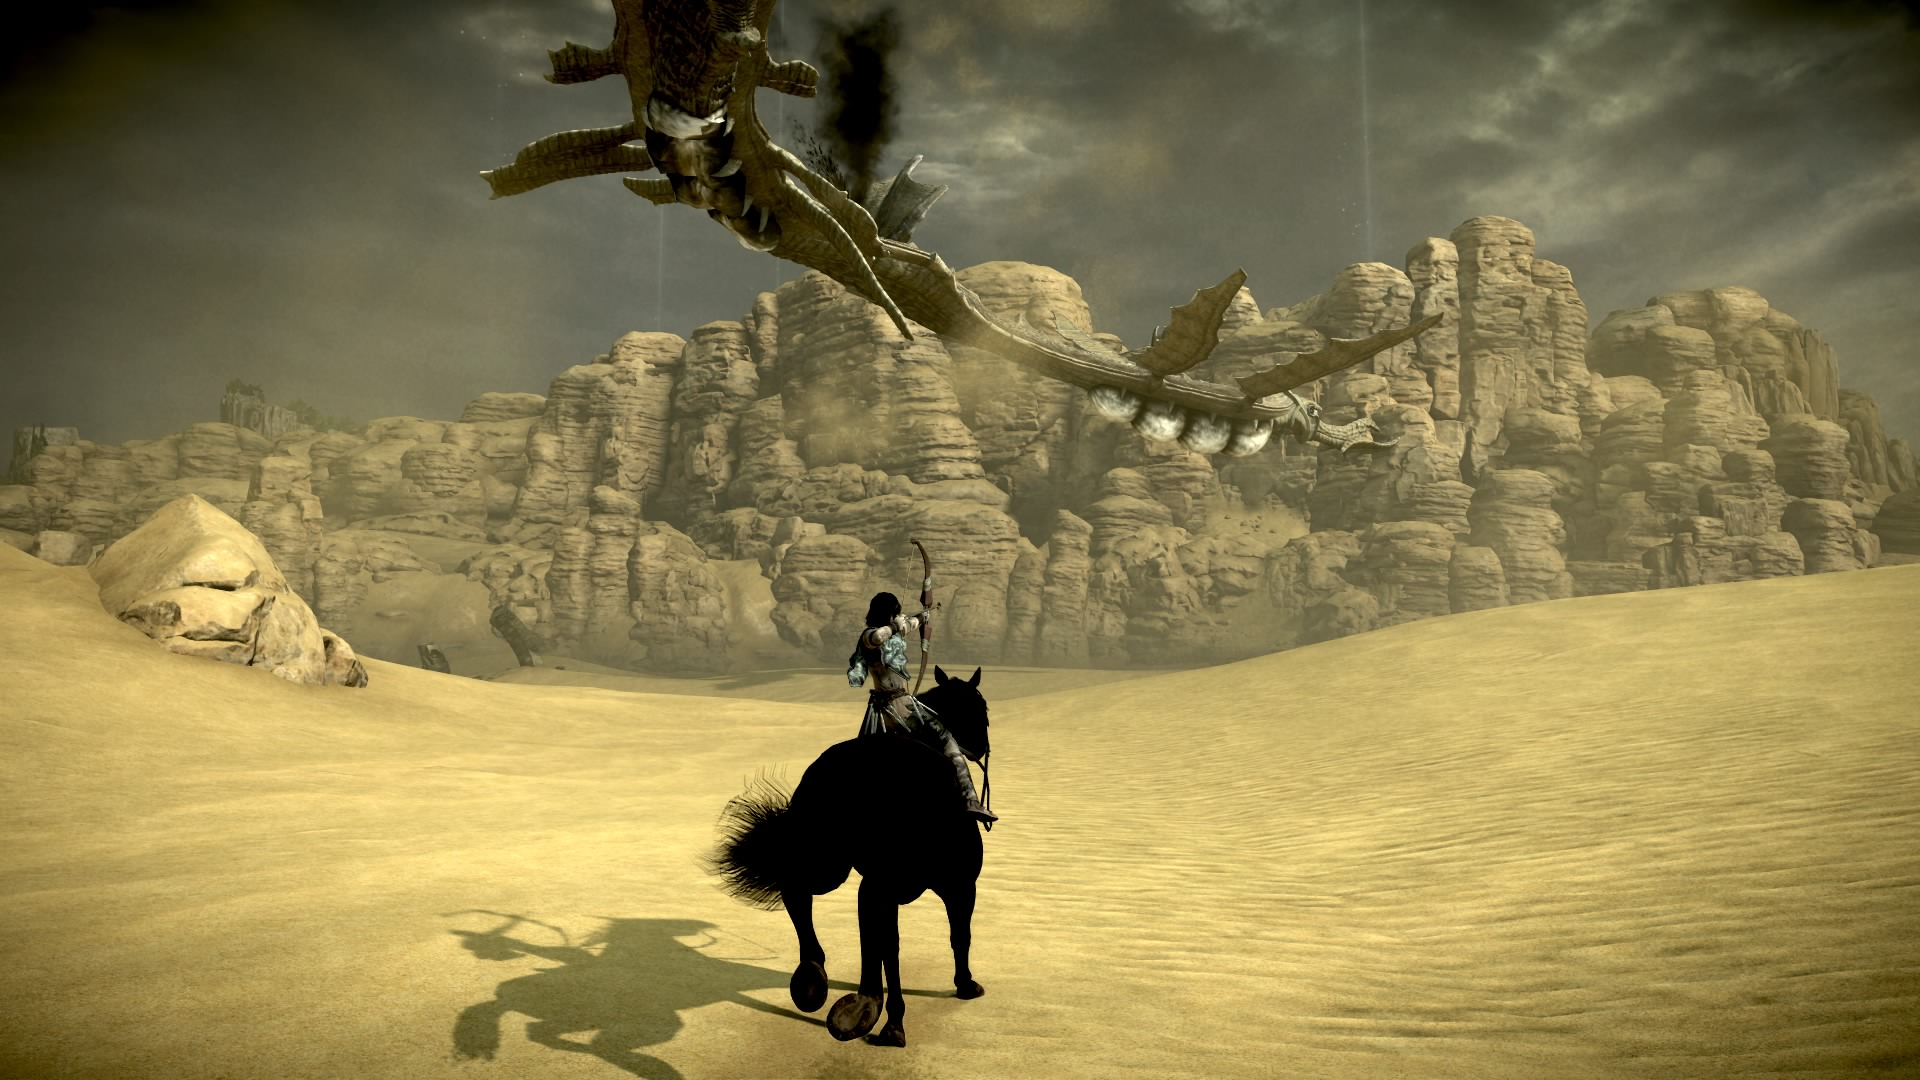 Shadow of the Colossus: Vale a Pena? 9